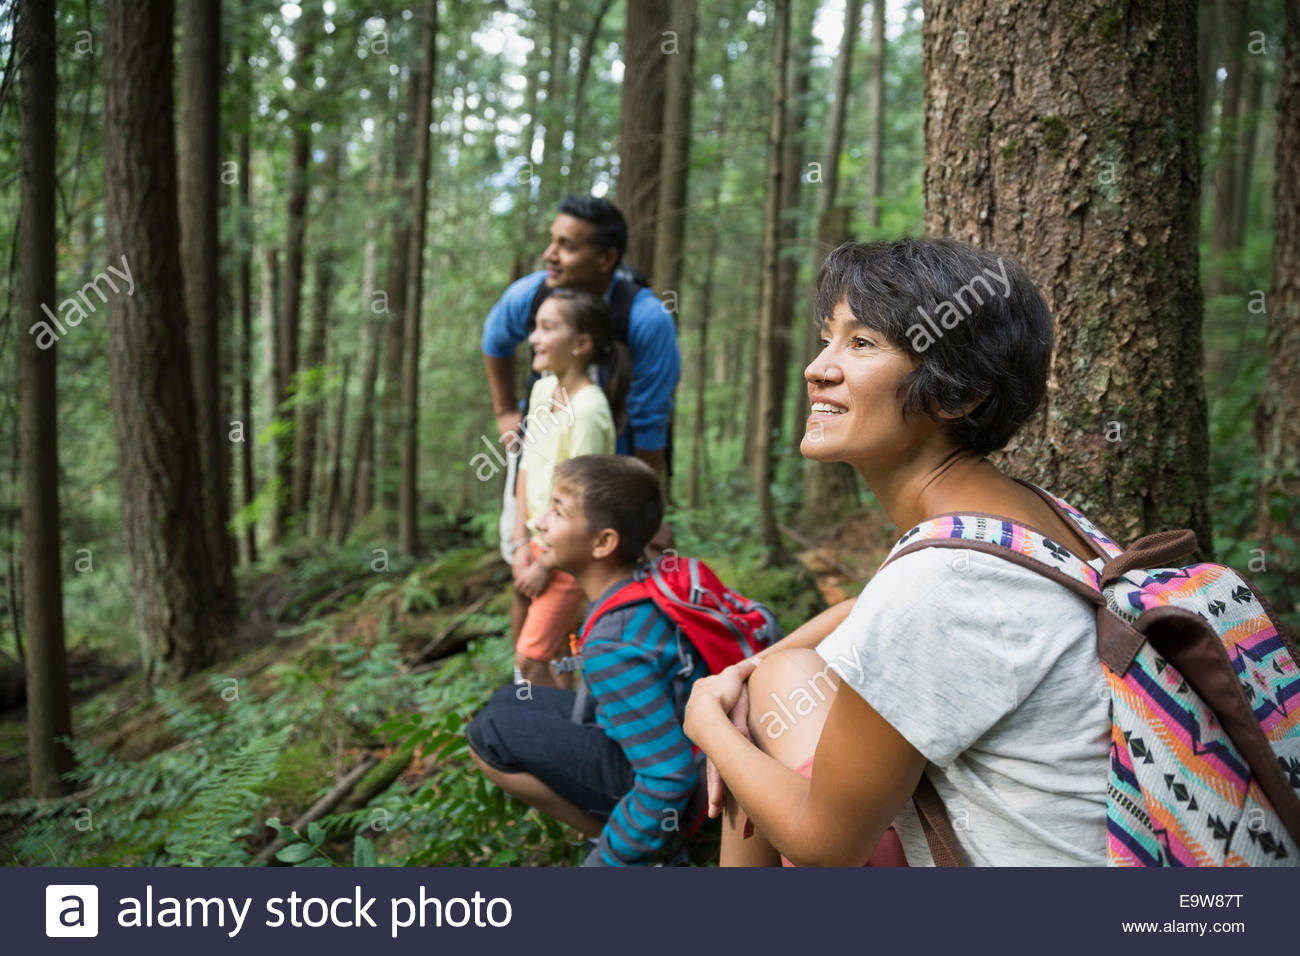 Family smiling in woods Photo Stock